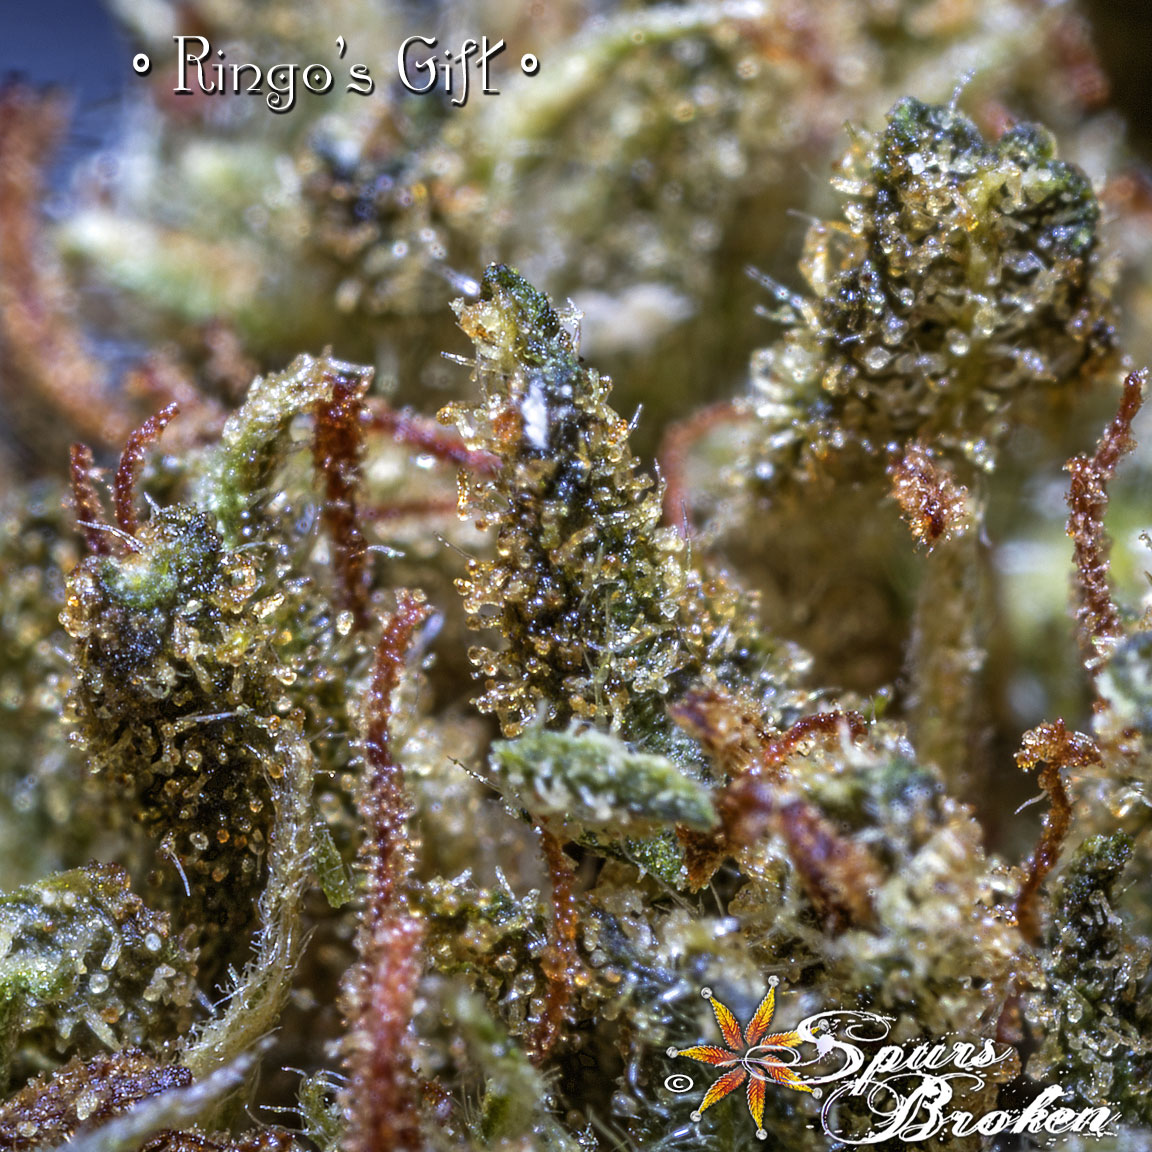 Ringo's Gift - Cannabis Macro Photography by Spurs Broken (Robert R. Sanders)